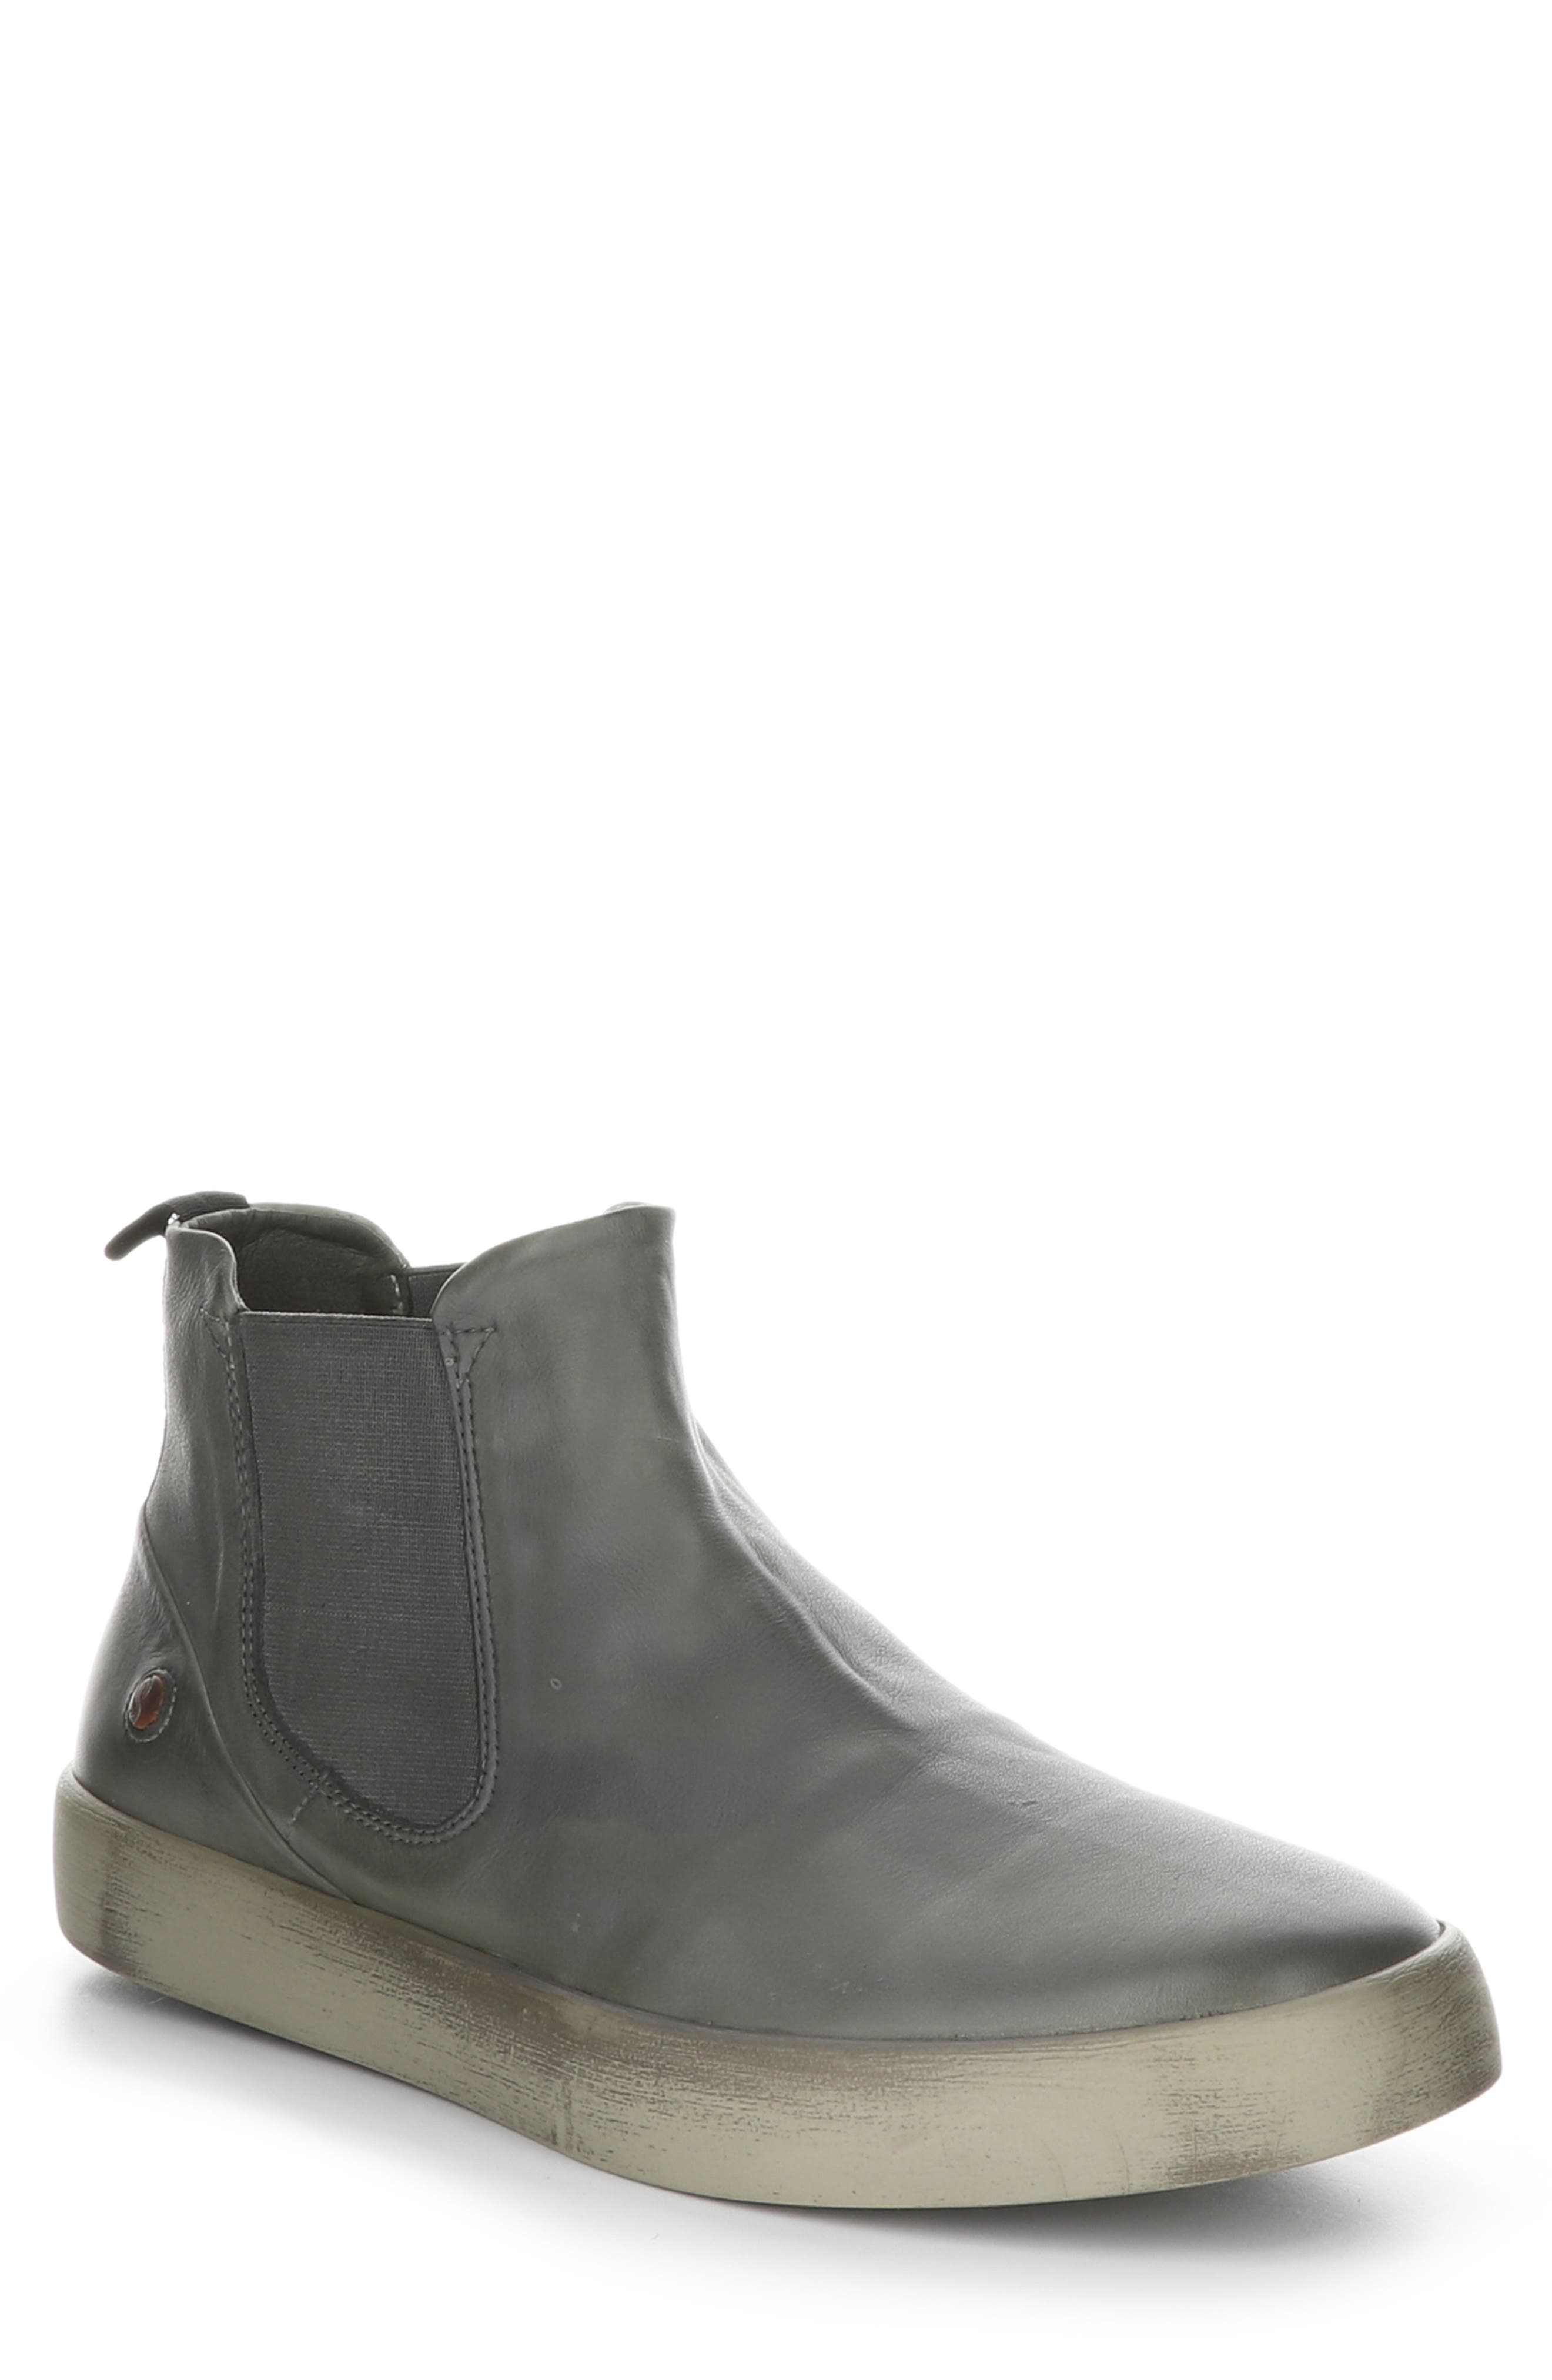 With molded footbed, arch support and a flexible platform, this lightweight Chelsea boot with breathable leather is an easy breezy choice for style and comfort. Style Name: Fly London Ryke Chelsea Boot (Men). Style Number: 6146638. Available in stores.